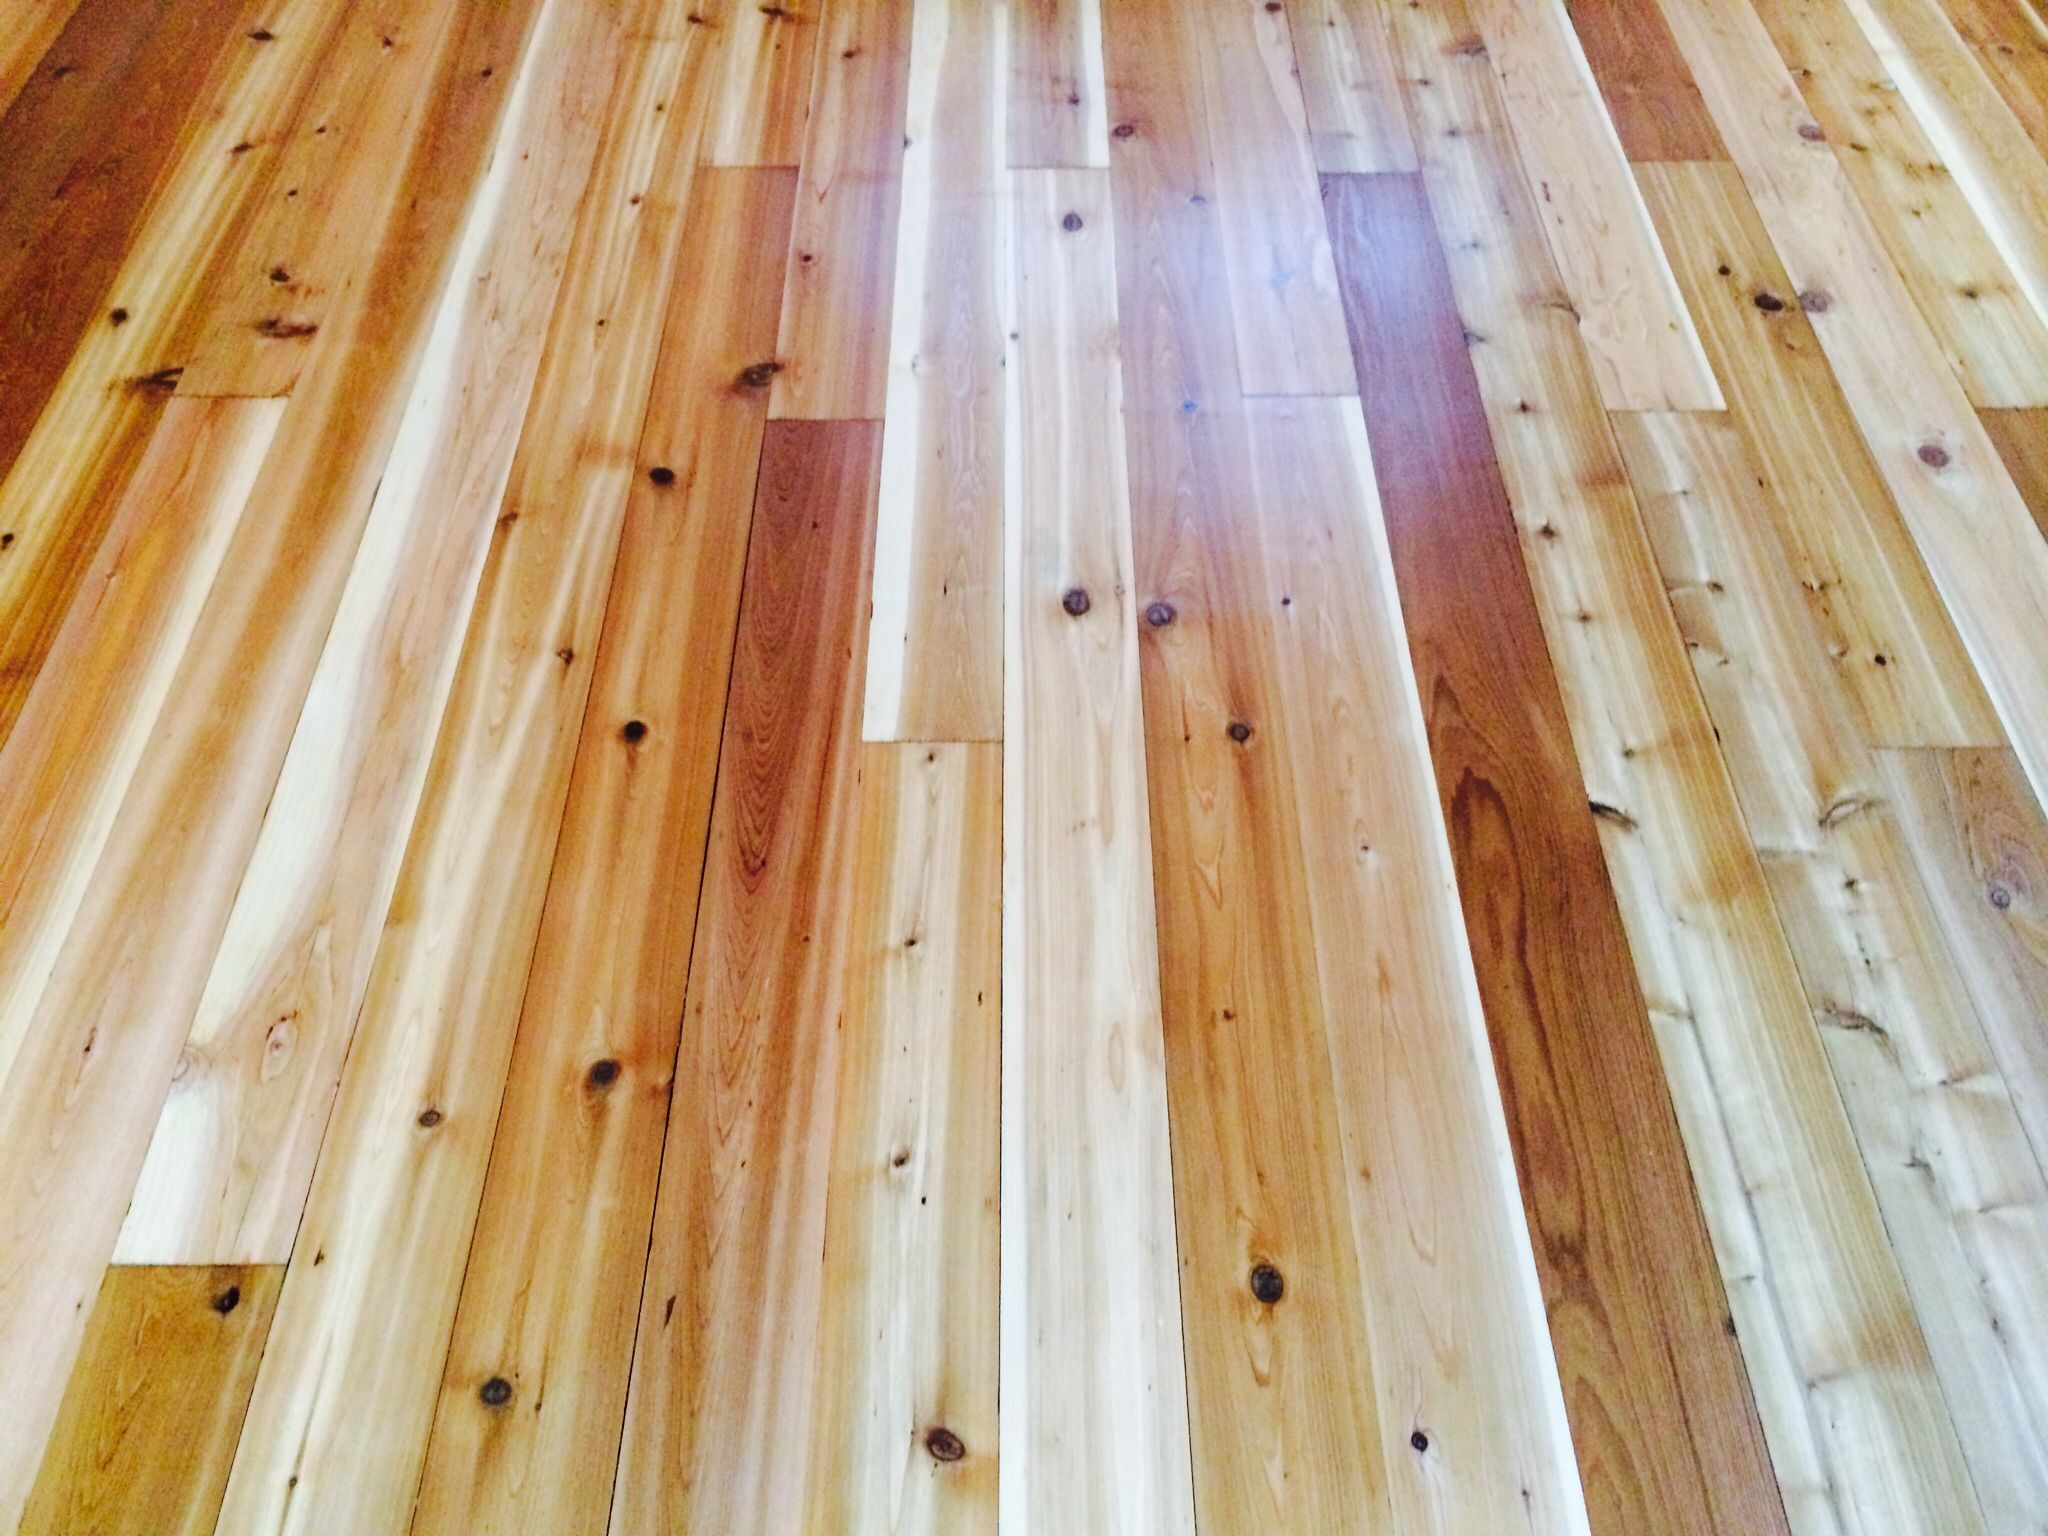 This Lakeside Cottage Had This Cedar Floor We Sanded And Refinished With Amber Sealer And Bona Refinishing Hardwood Floors Lakeside Cottage Refinishing Floors